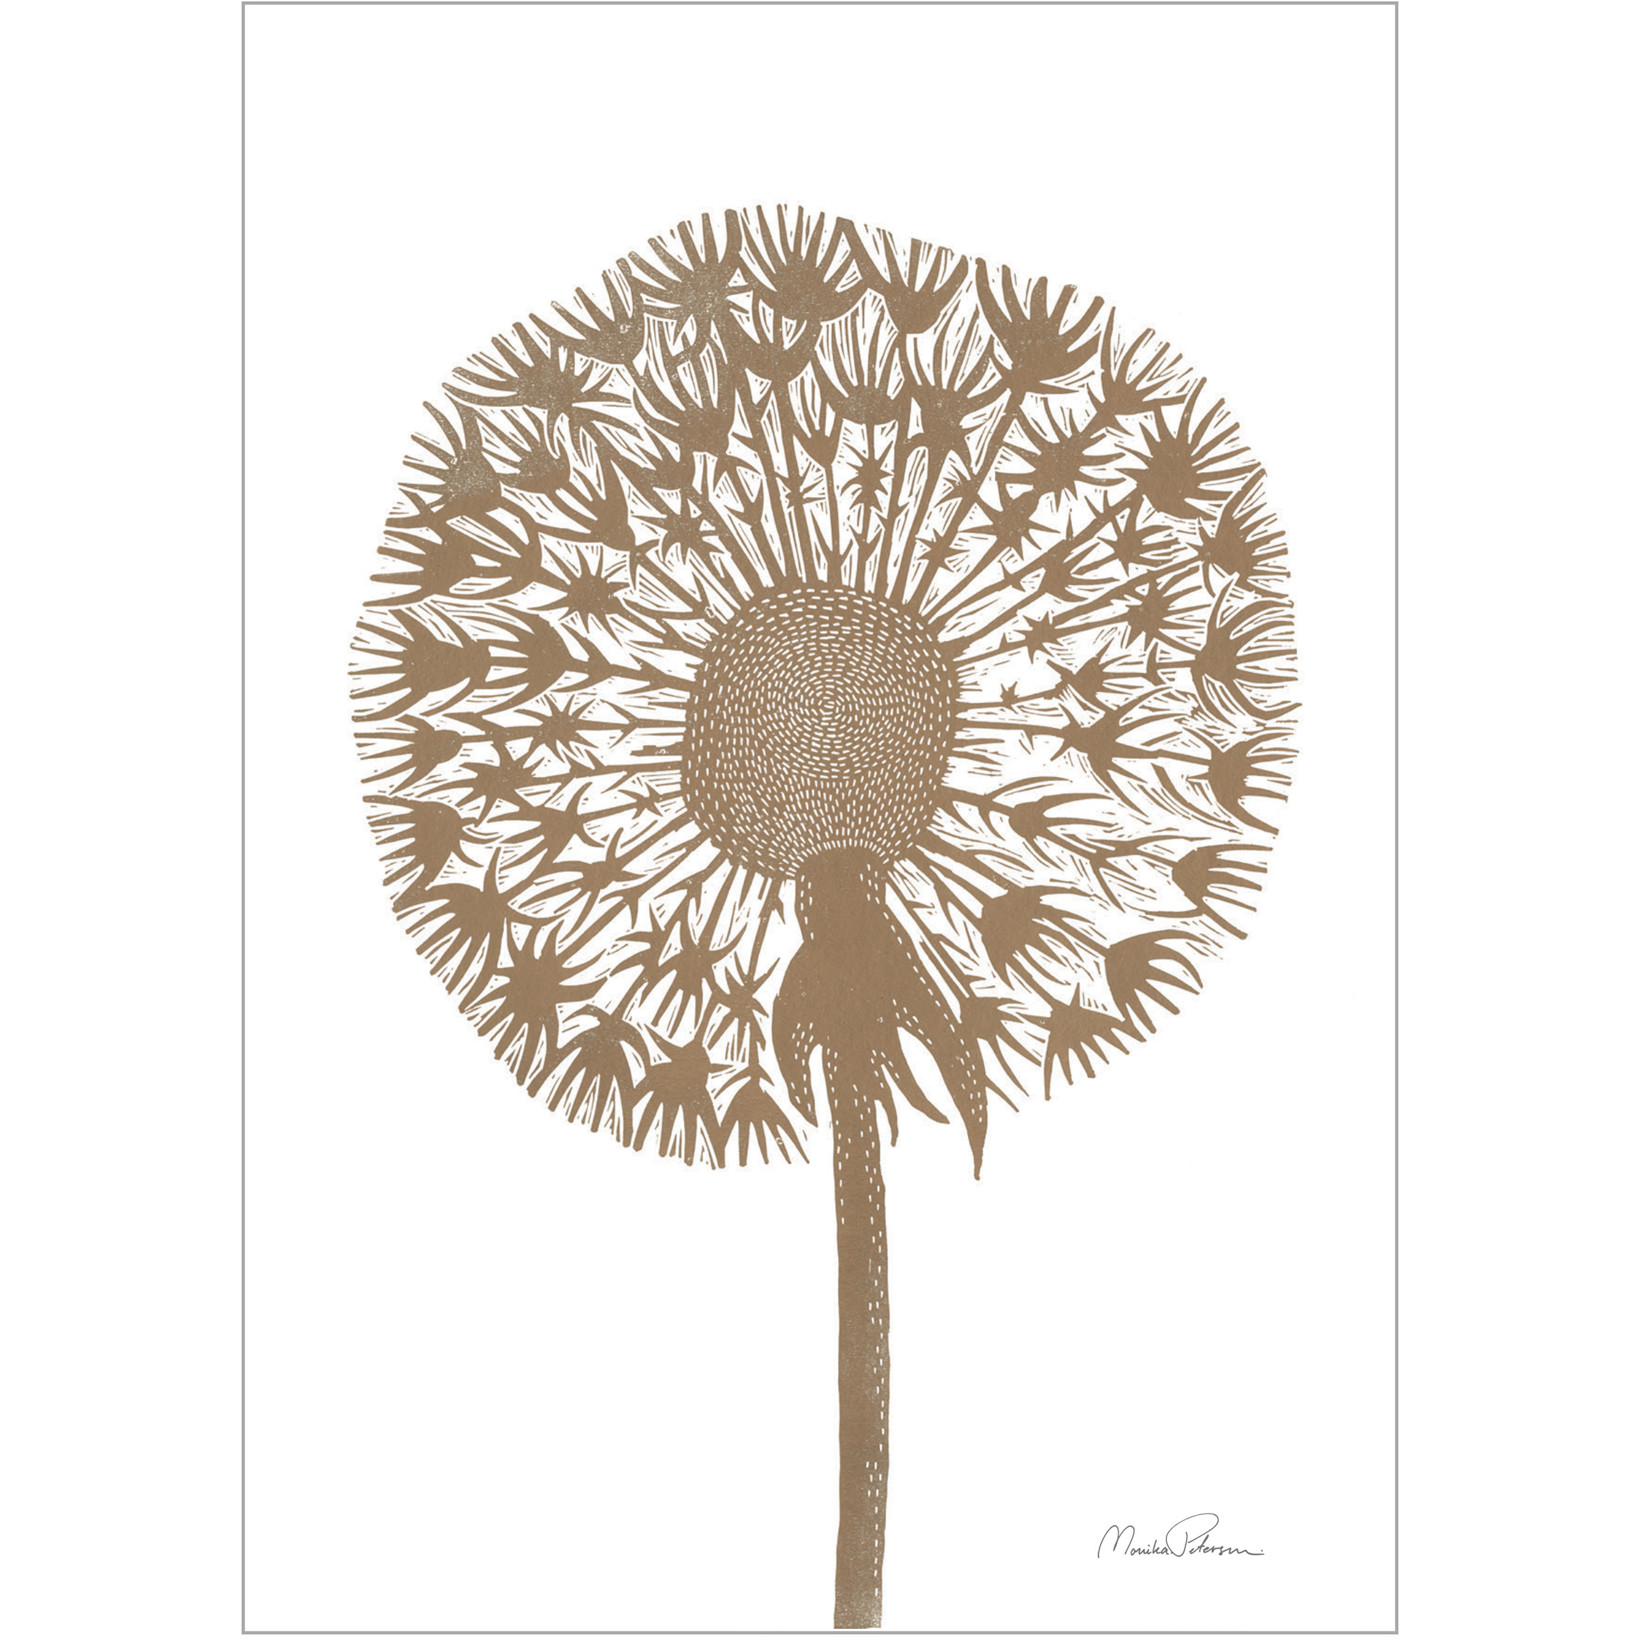 Monika Petersen Dandelion A5